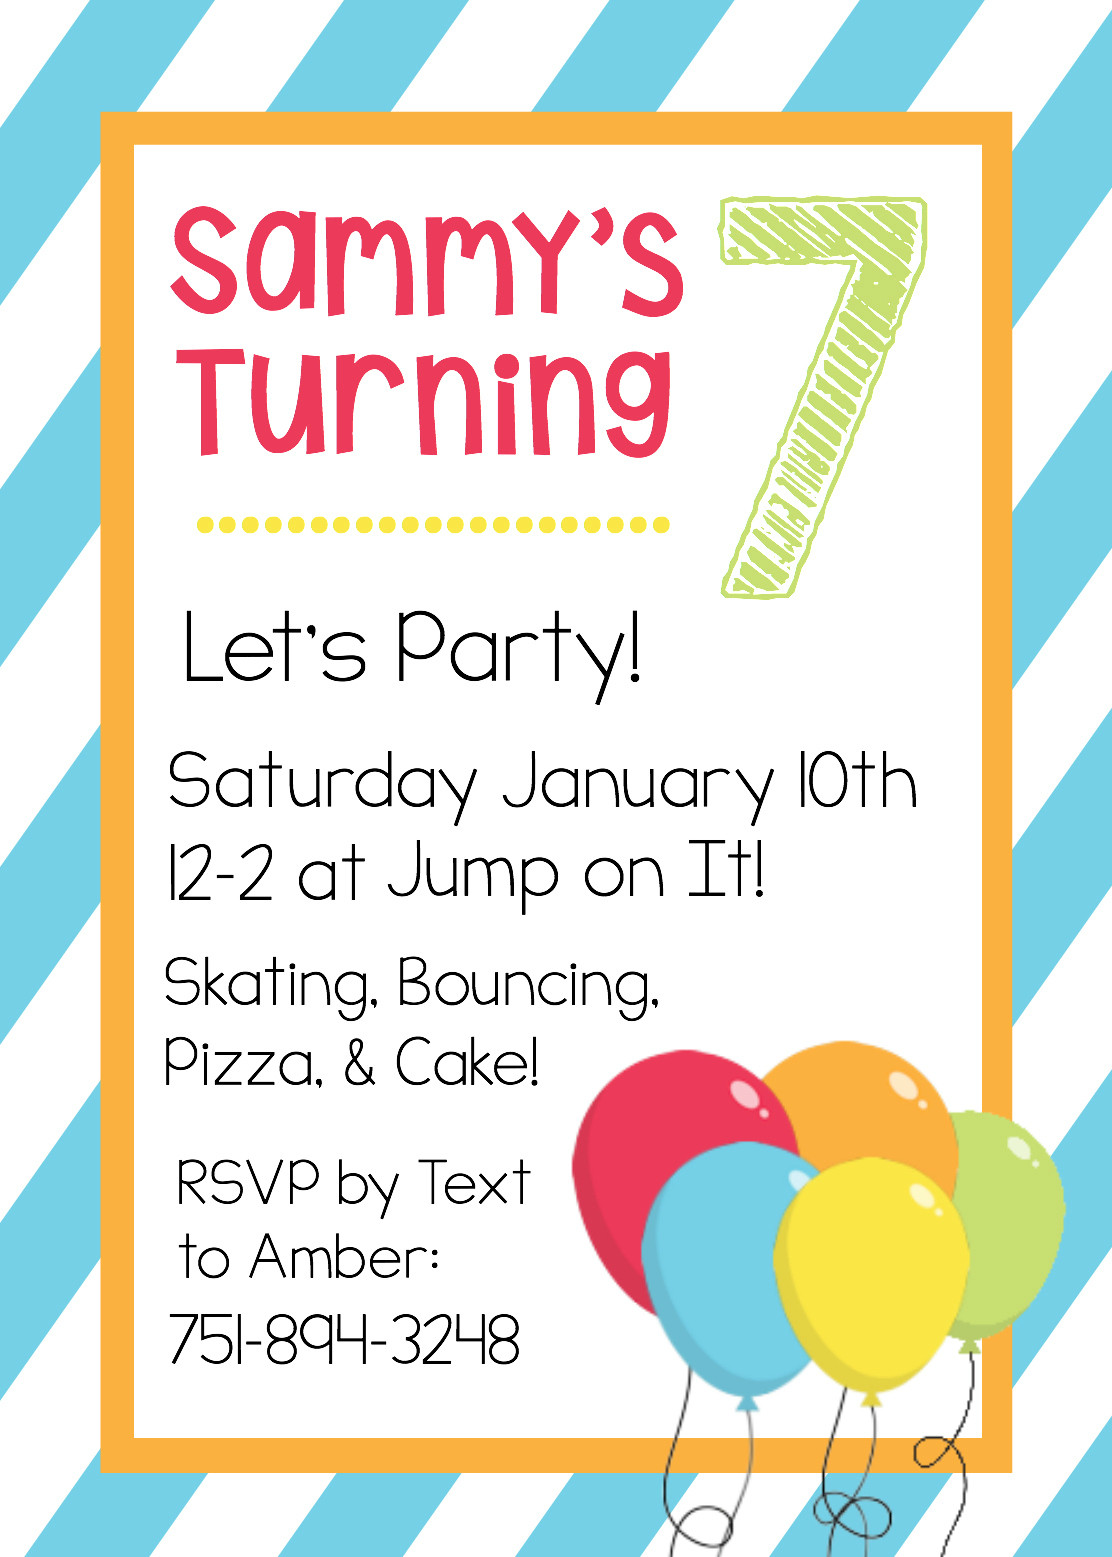 Best ideas about Birthday Party Templates . Save or Pin Free Printable Birthday Invitation Templates Now.